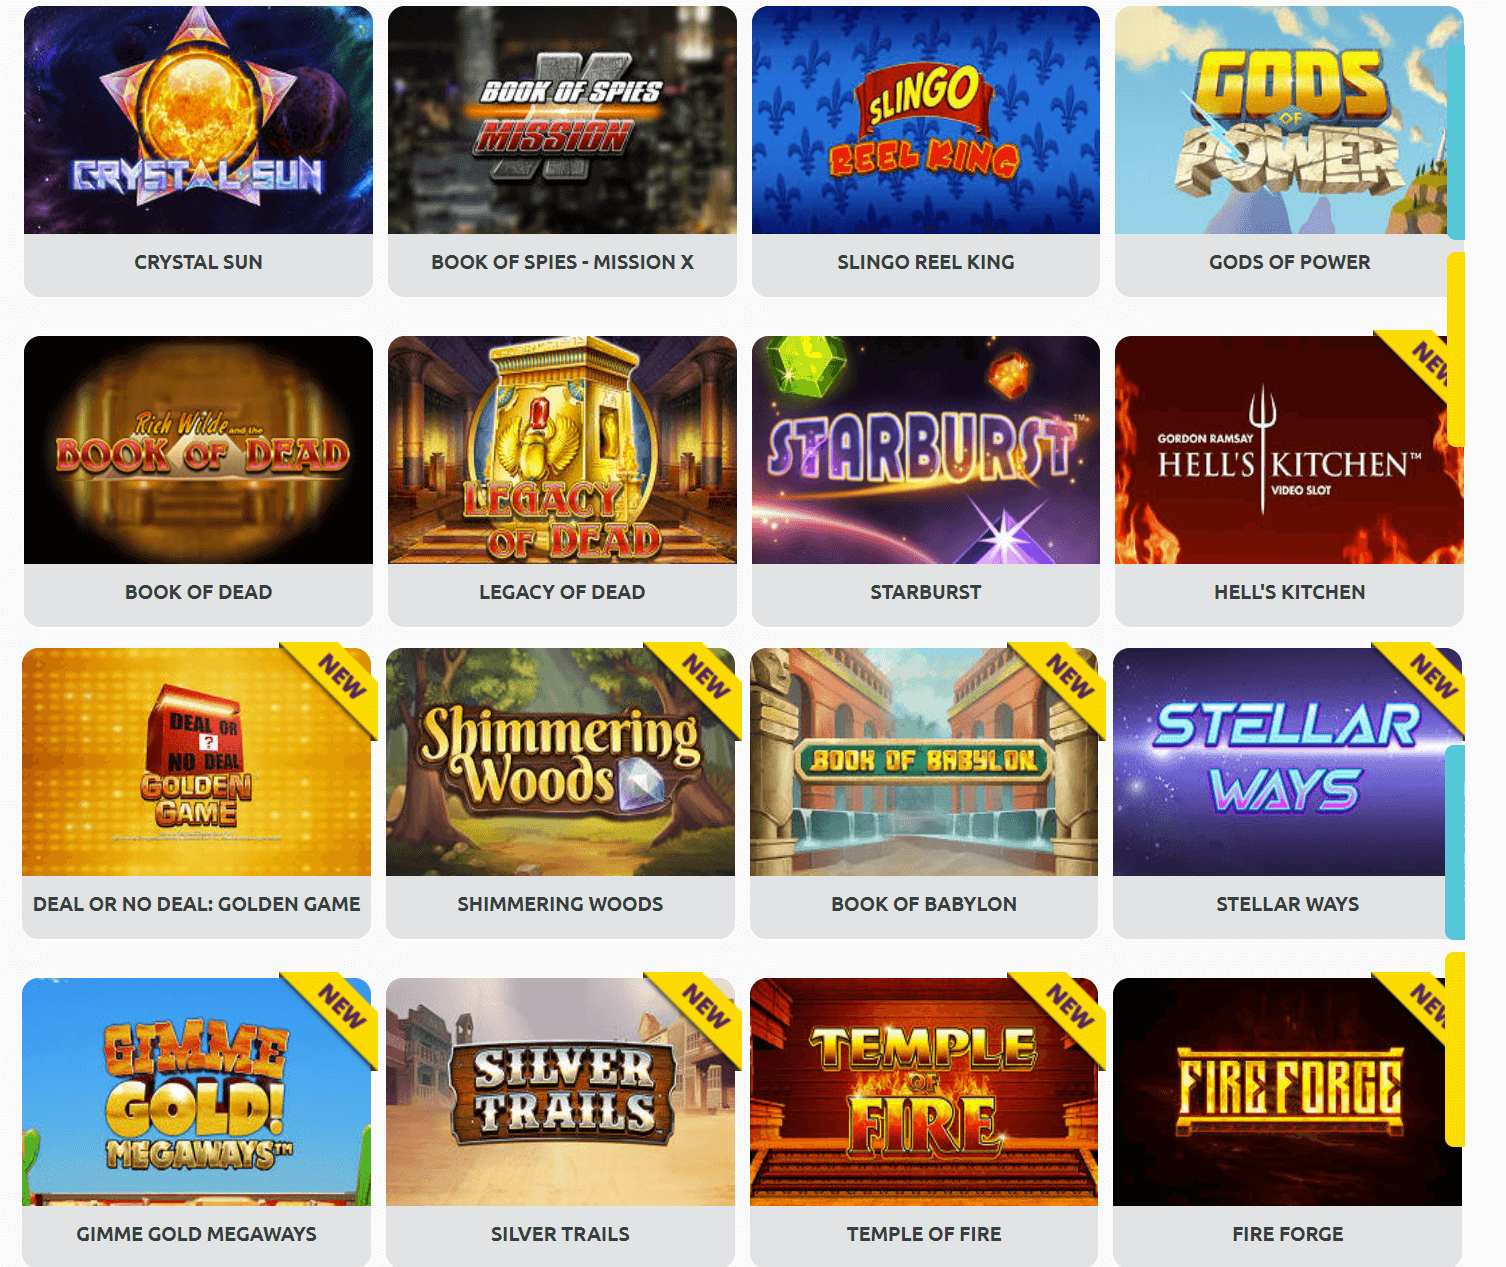 A screenshot of some of the slots you can play Miami Dice